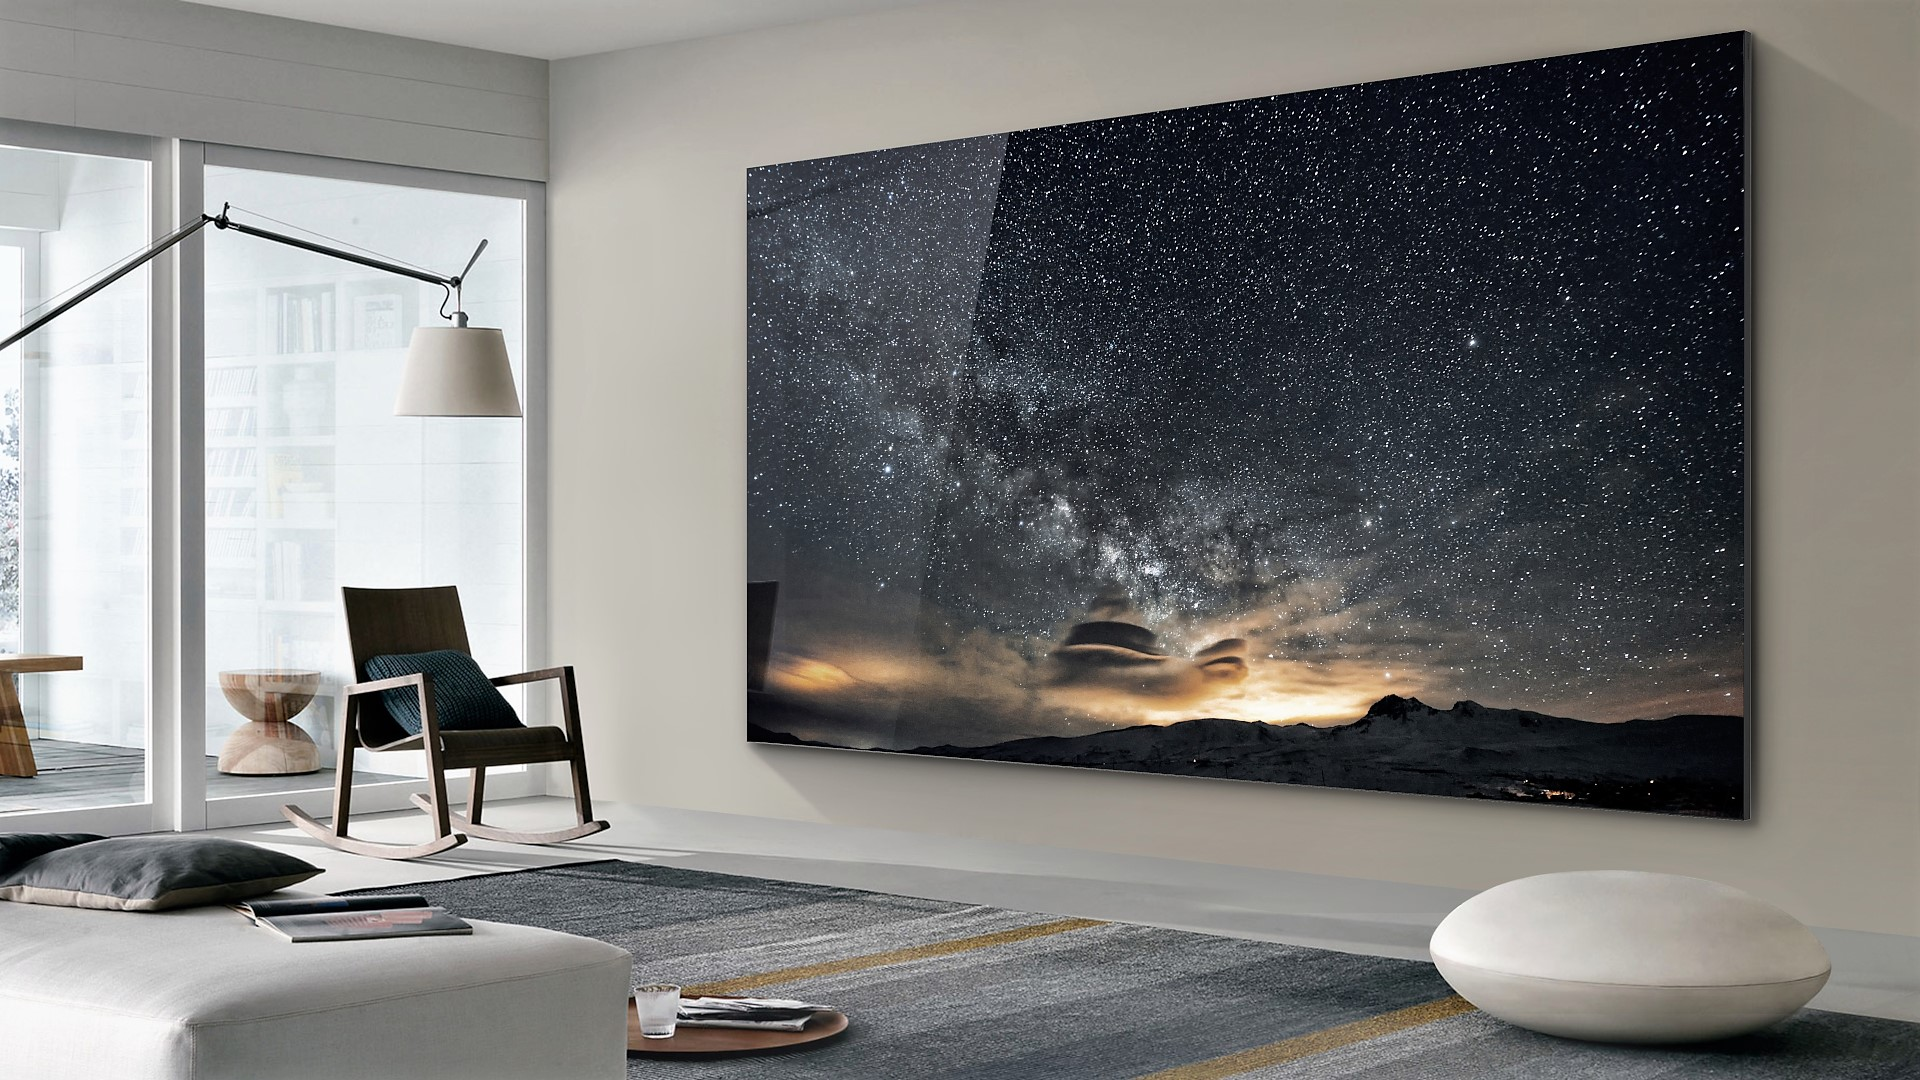 New $500,000 Samsung 219-inch Micro Led TV Wall